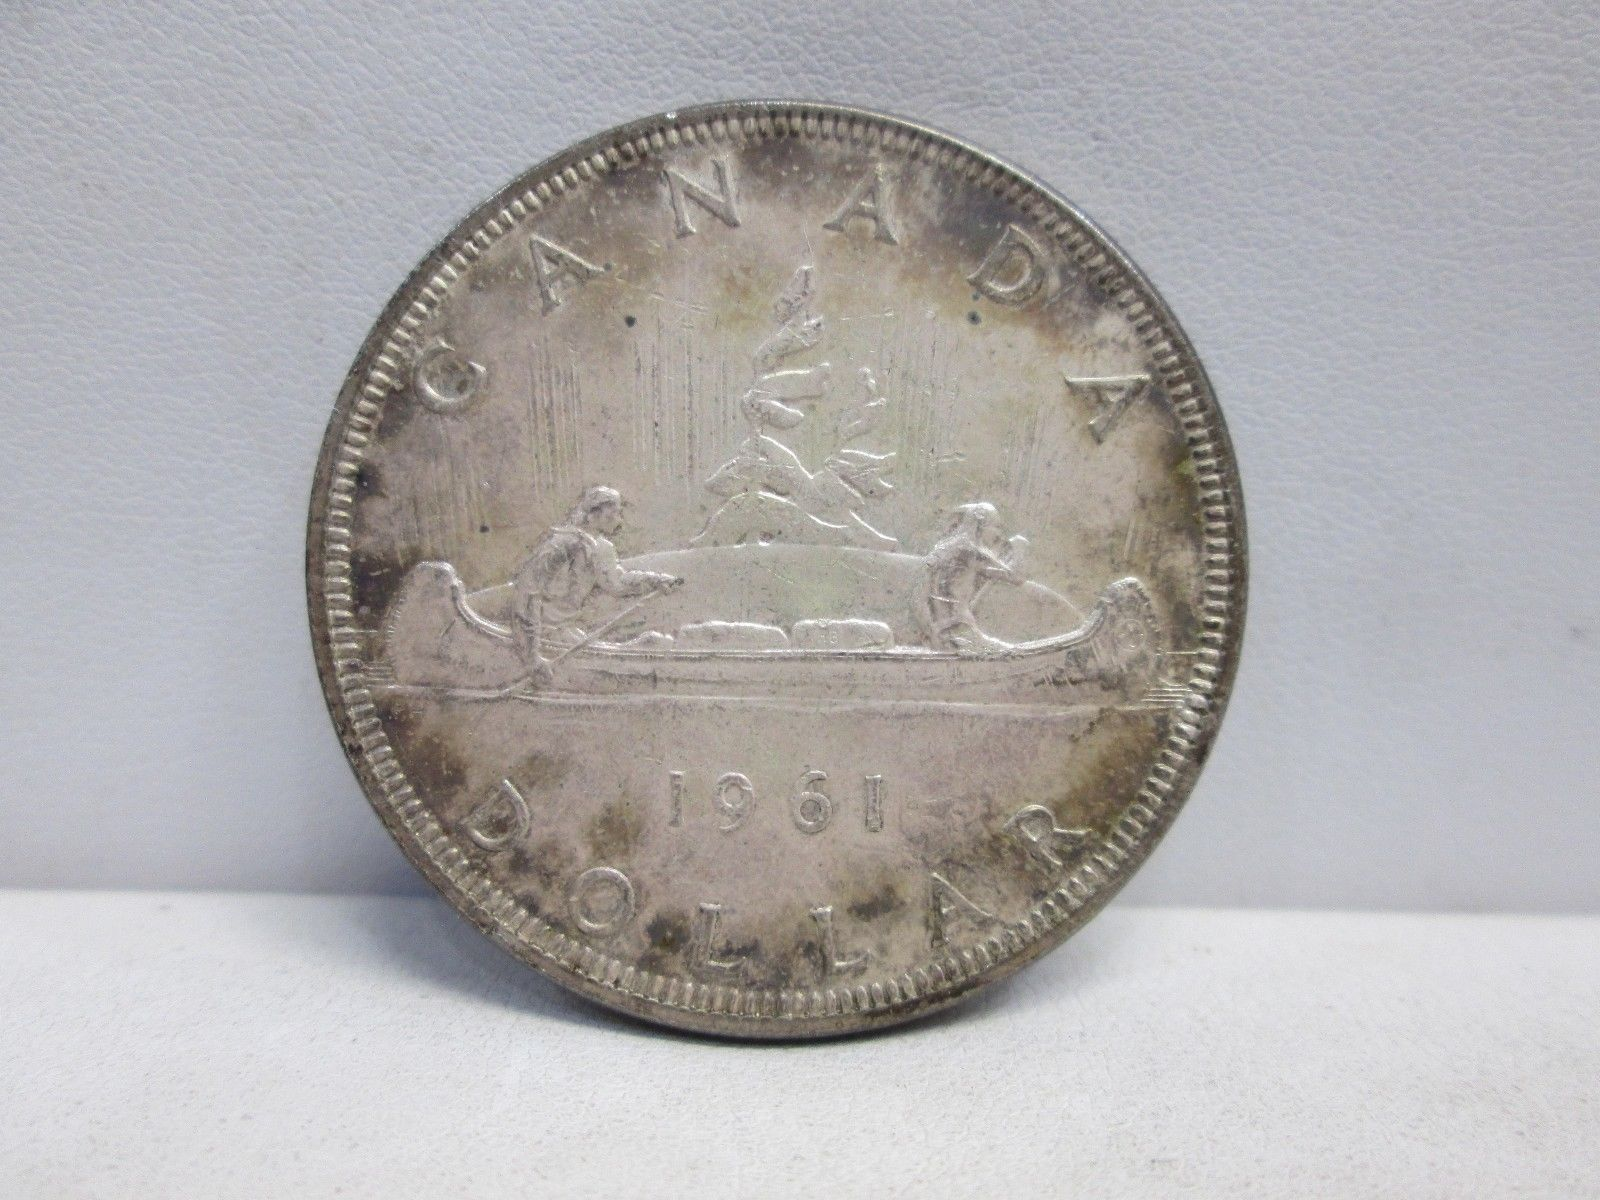 1961 Canadian Silver One Dollar Coin With Images Coins One Dollar Dollar Coin